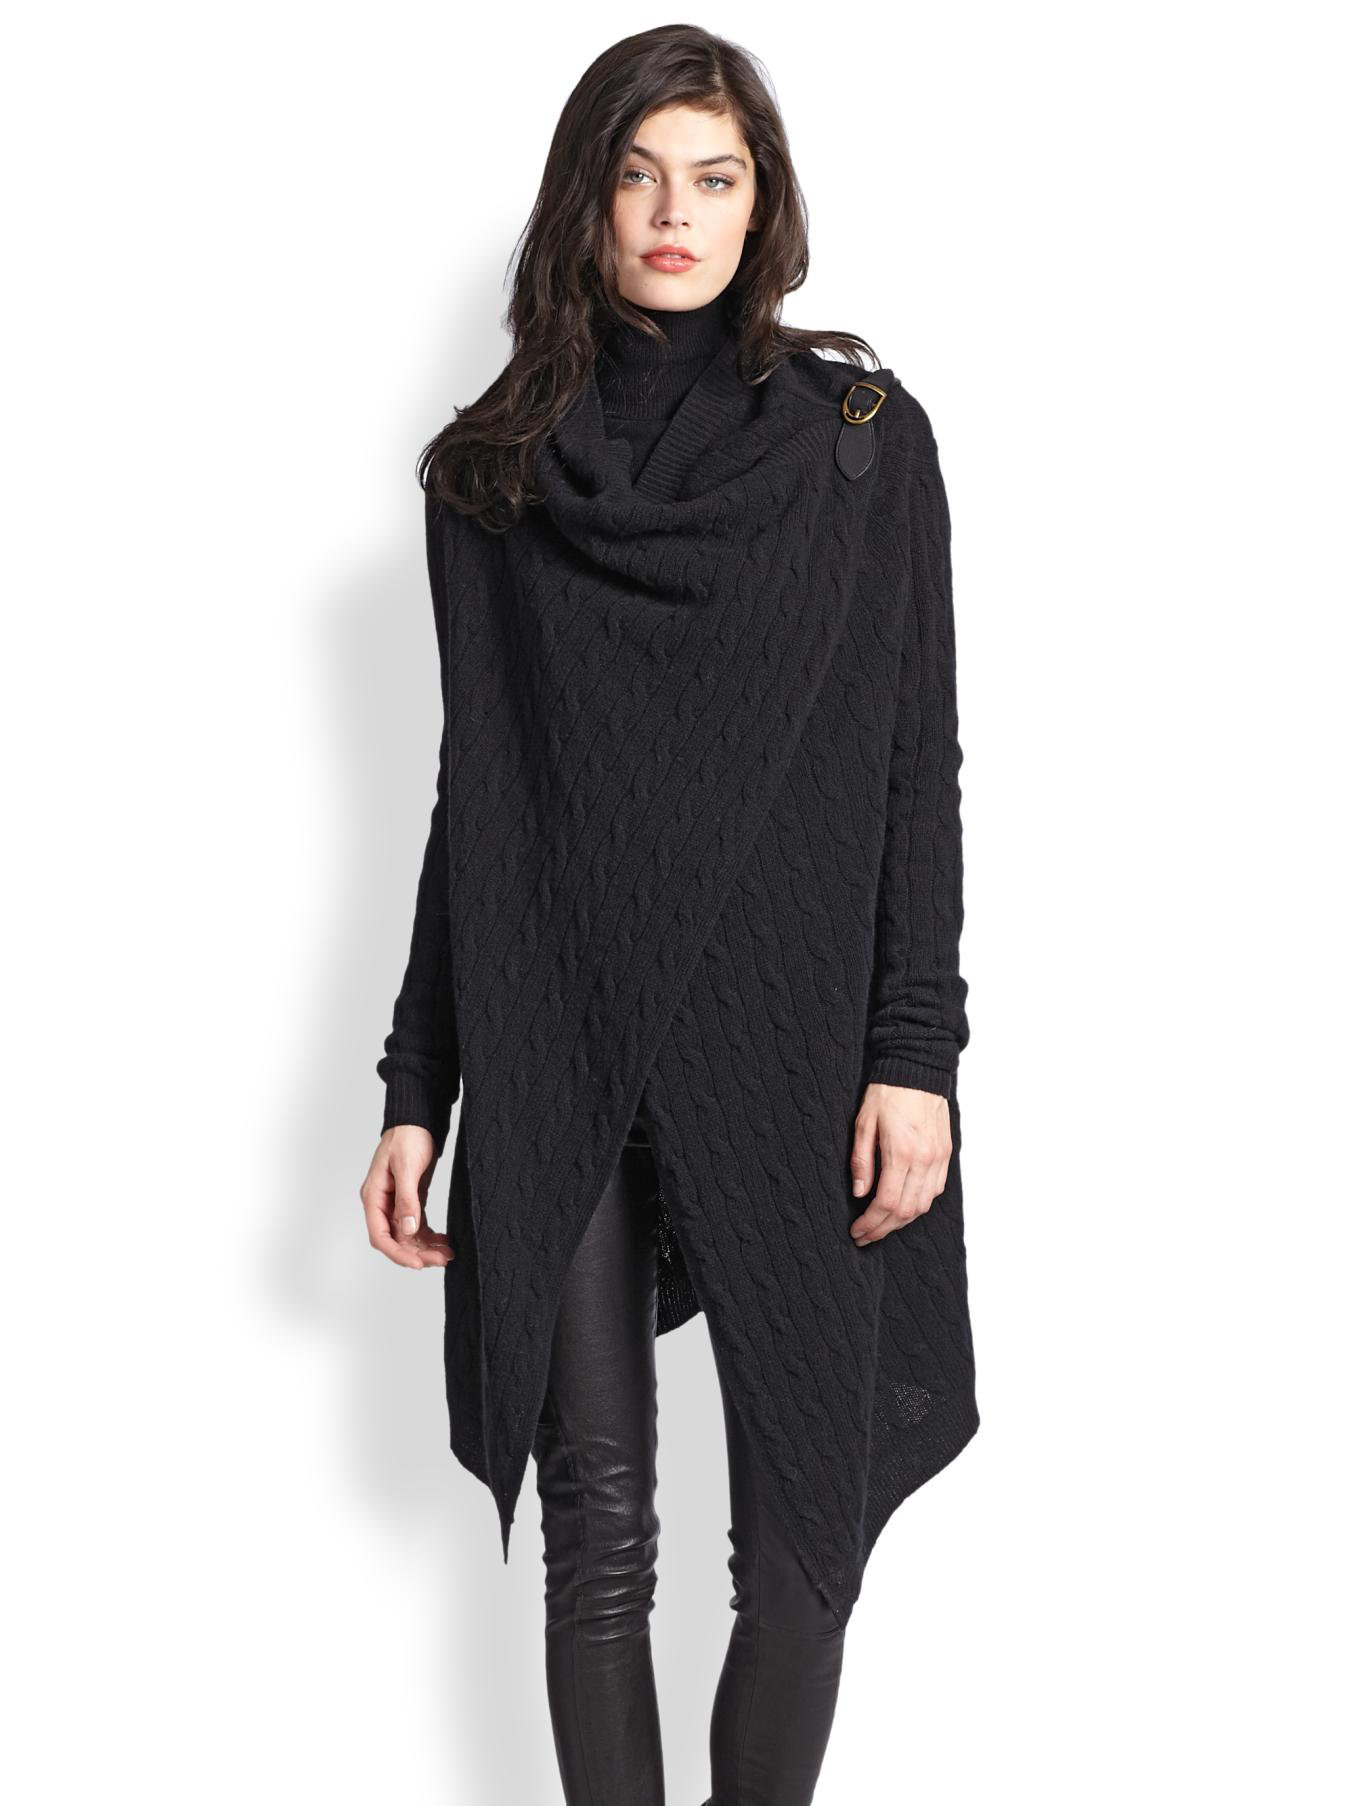 Polo ralph lauren Wool & Cashmere Wrap Sweater in Black | Lyst